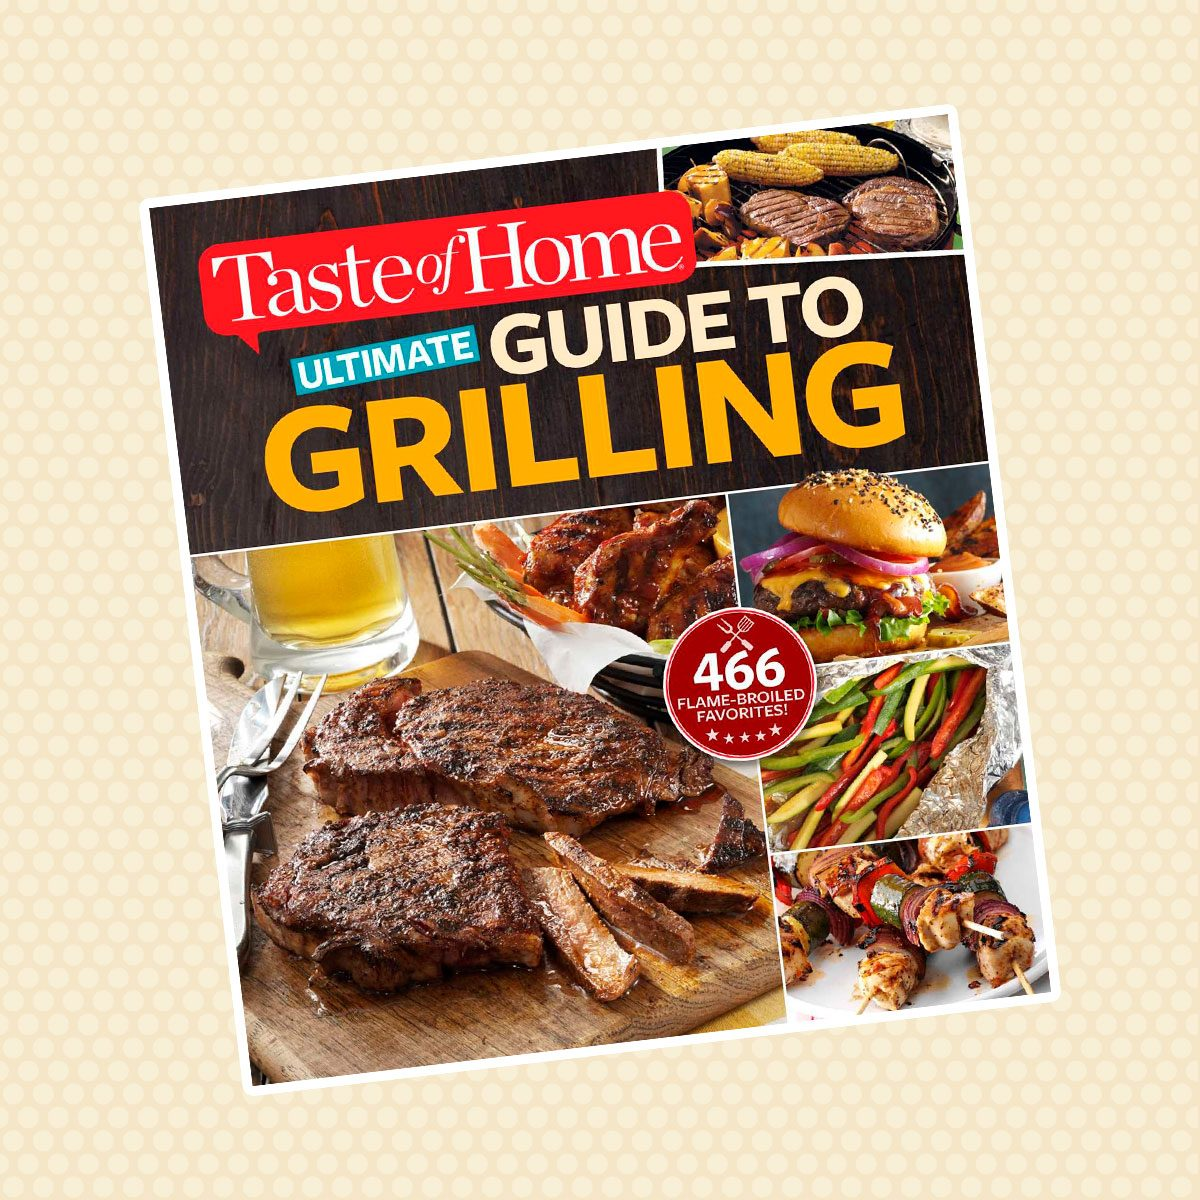 Taste of Home's Ultimate Guide to Grilling